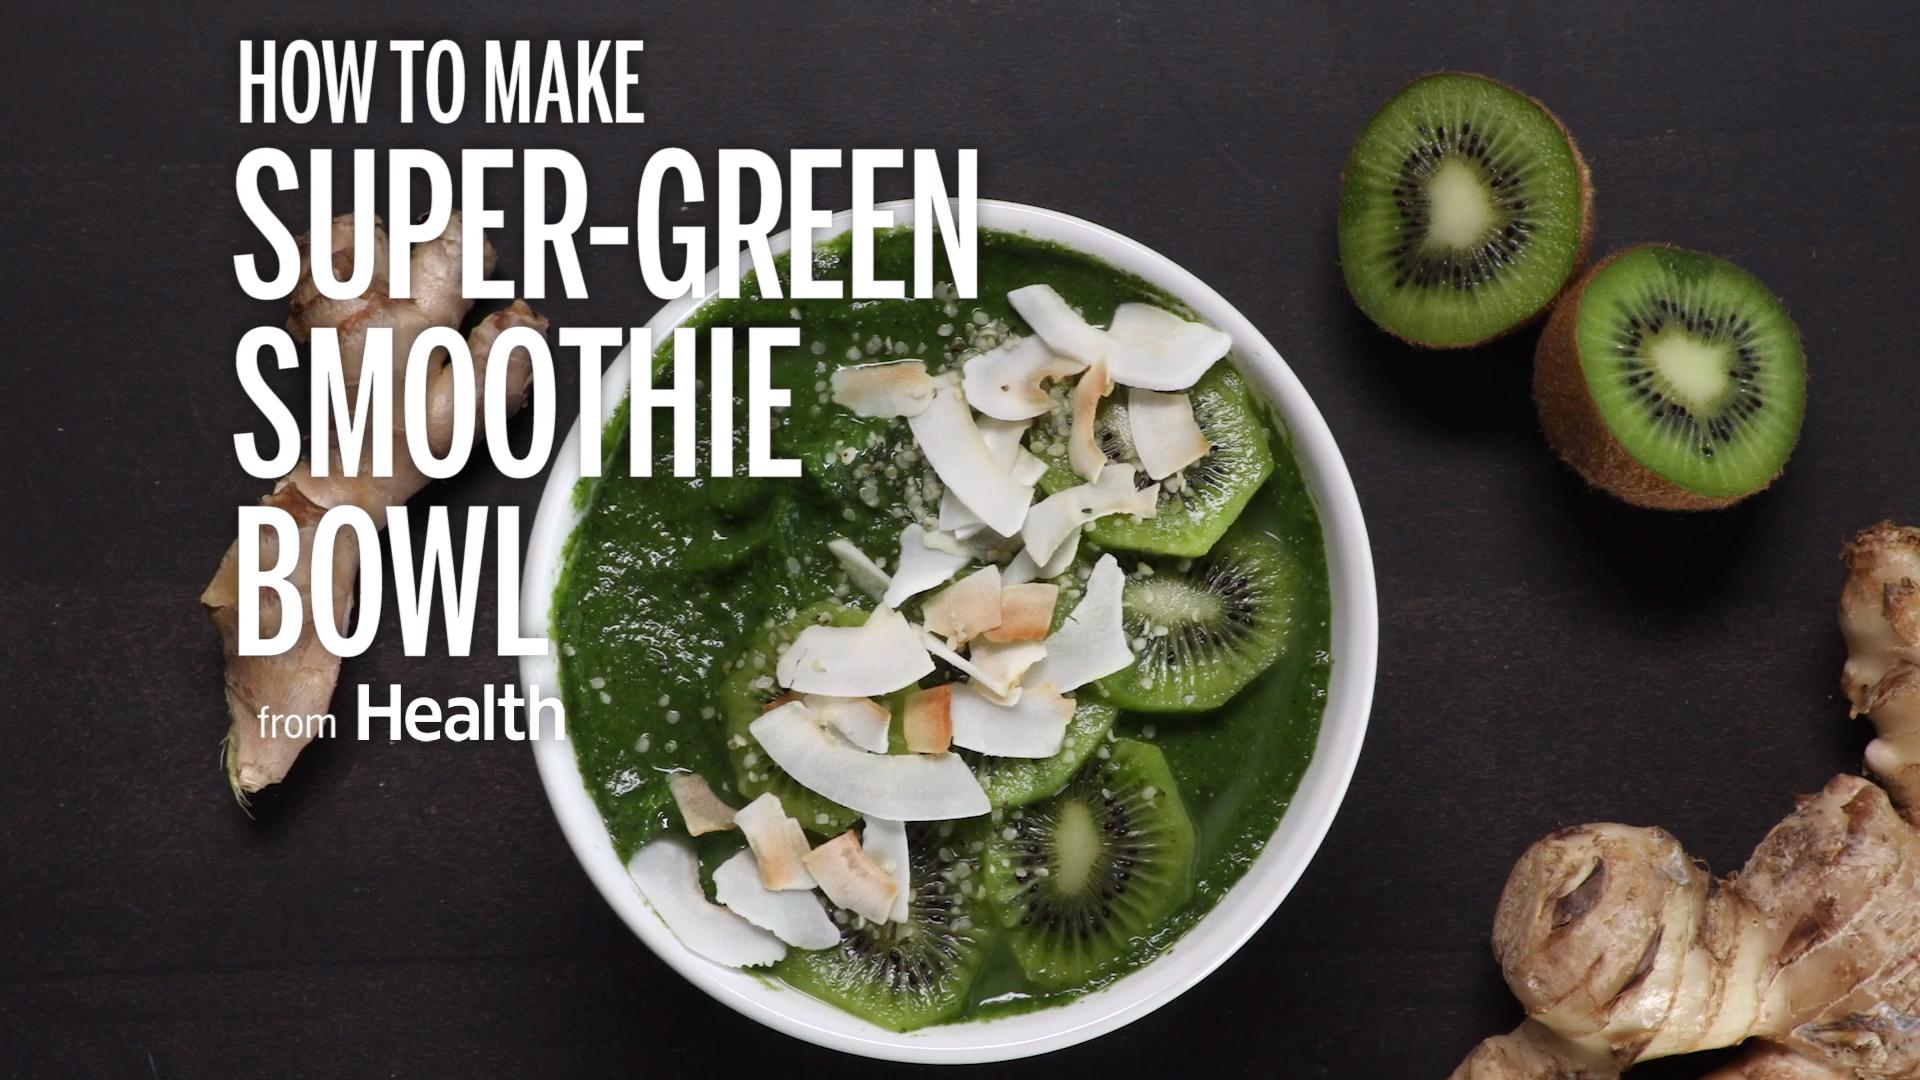 Super-Green Smoothie Bowl